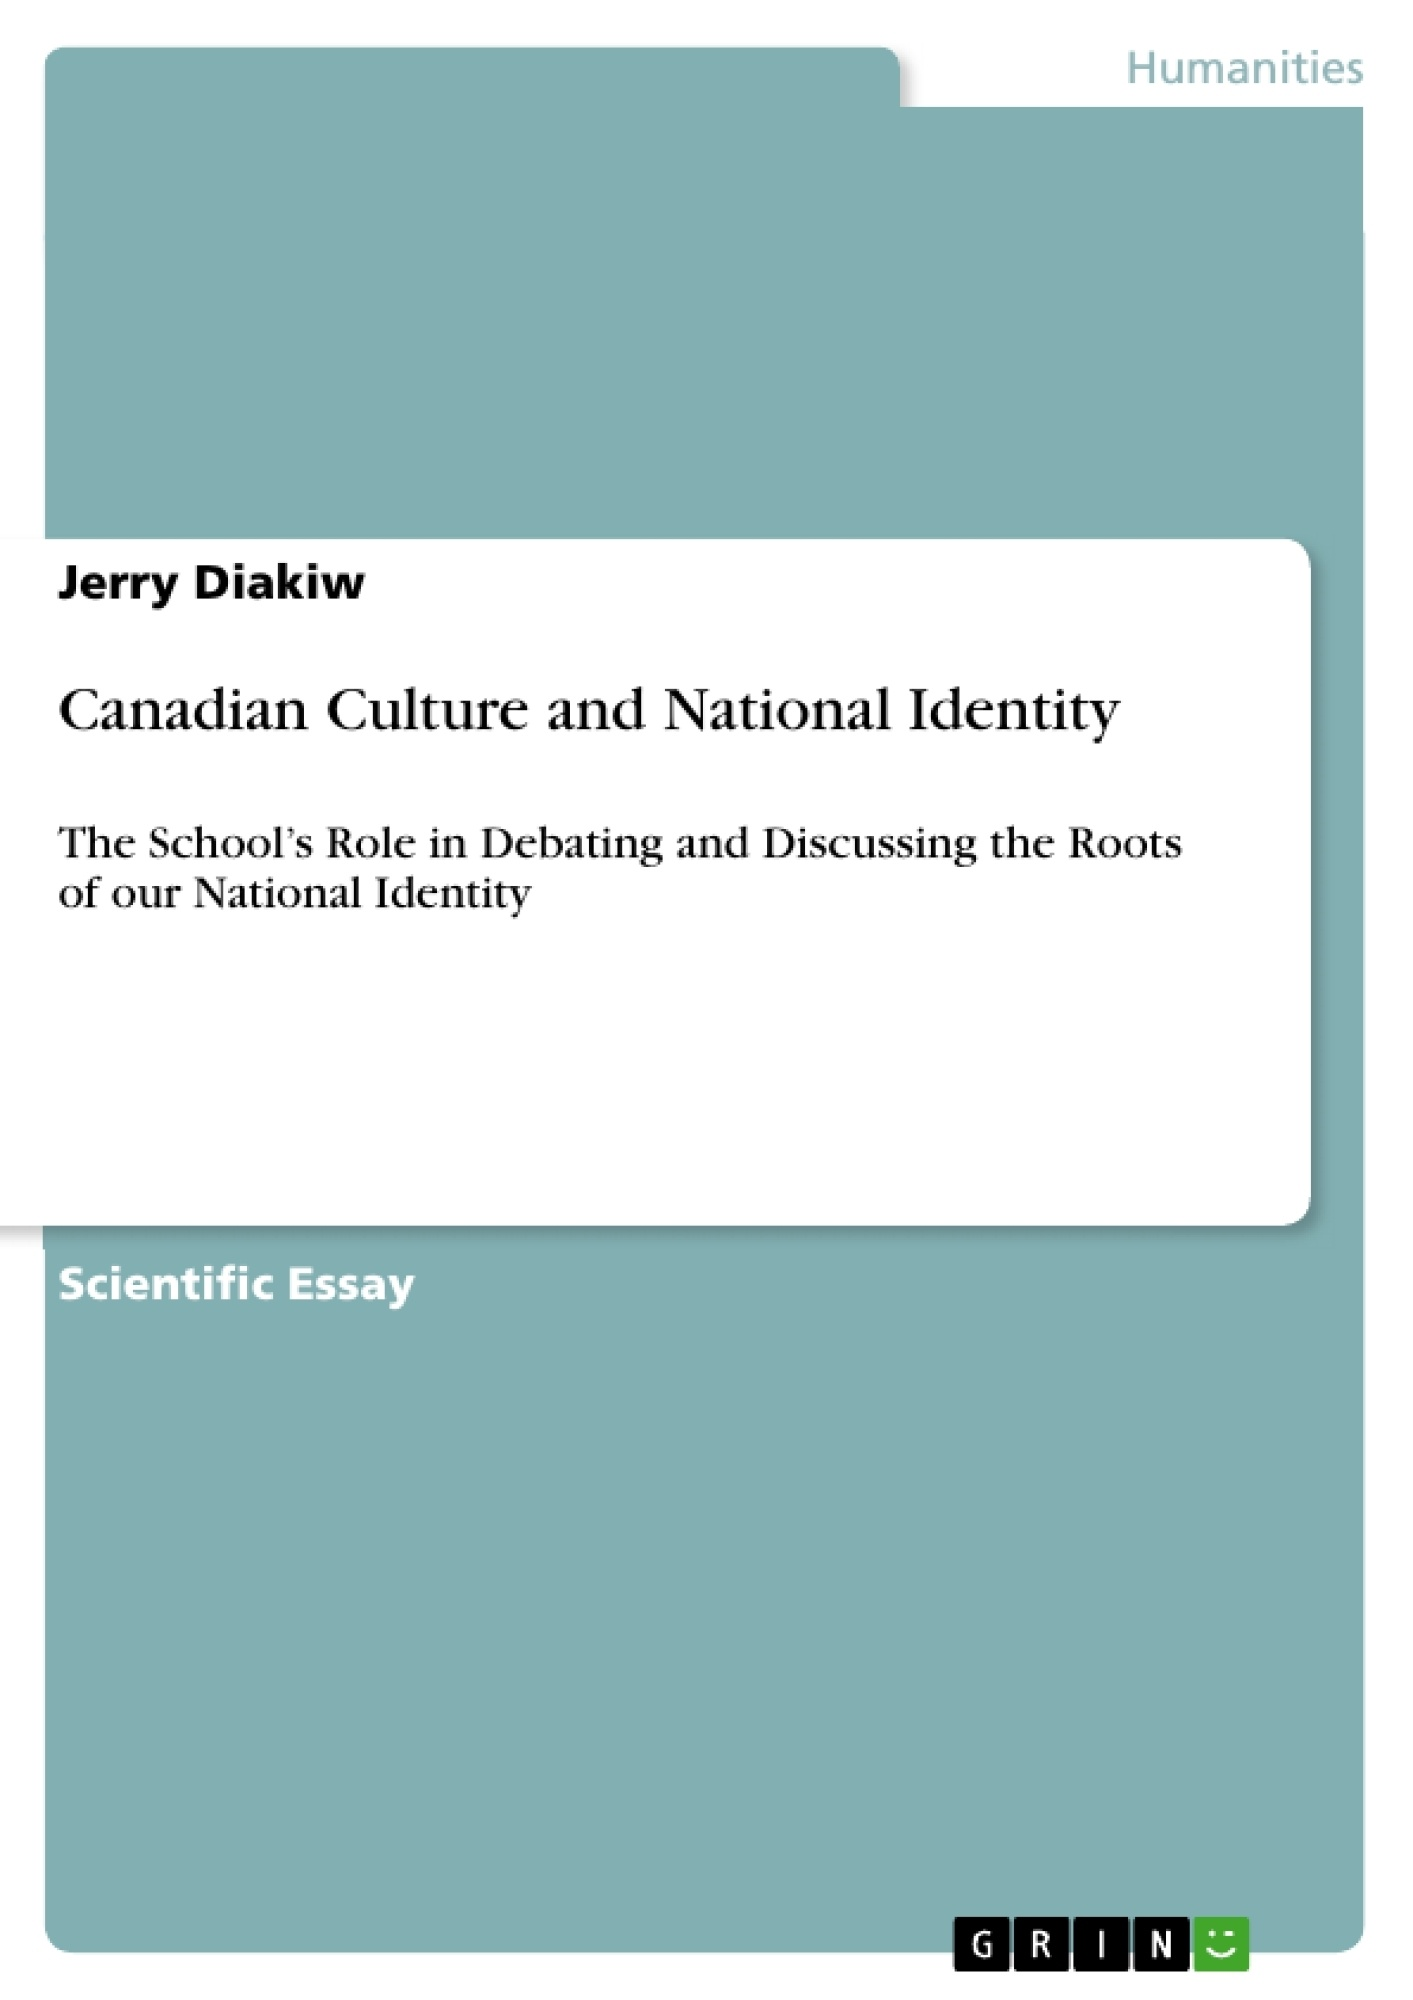 Title: Canadian Culture and National Identity